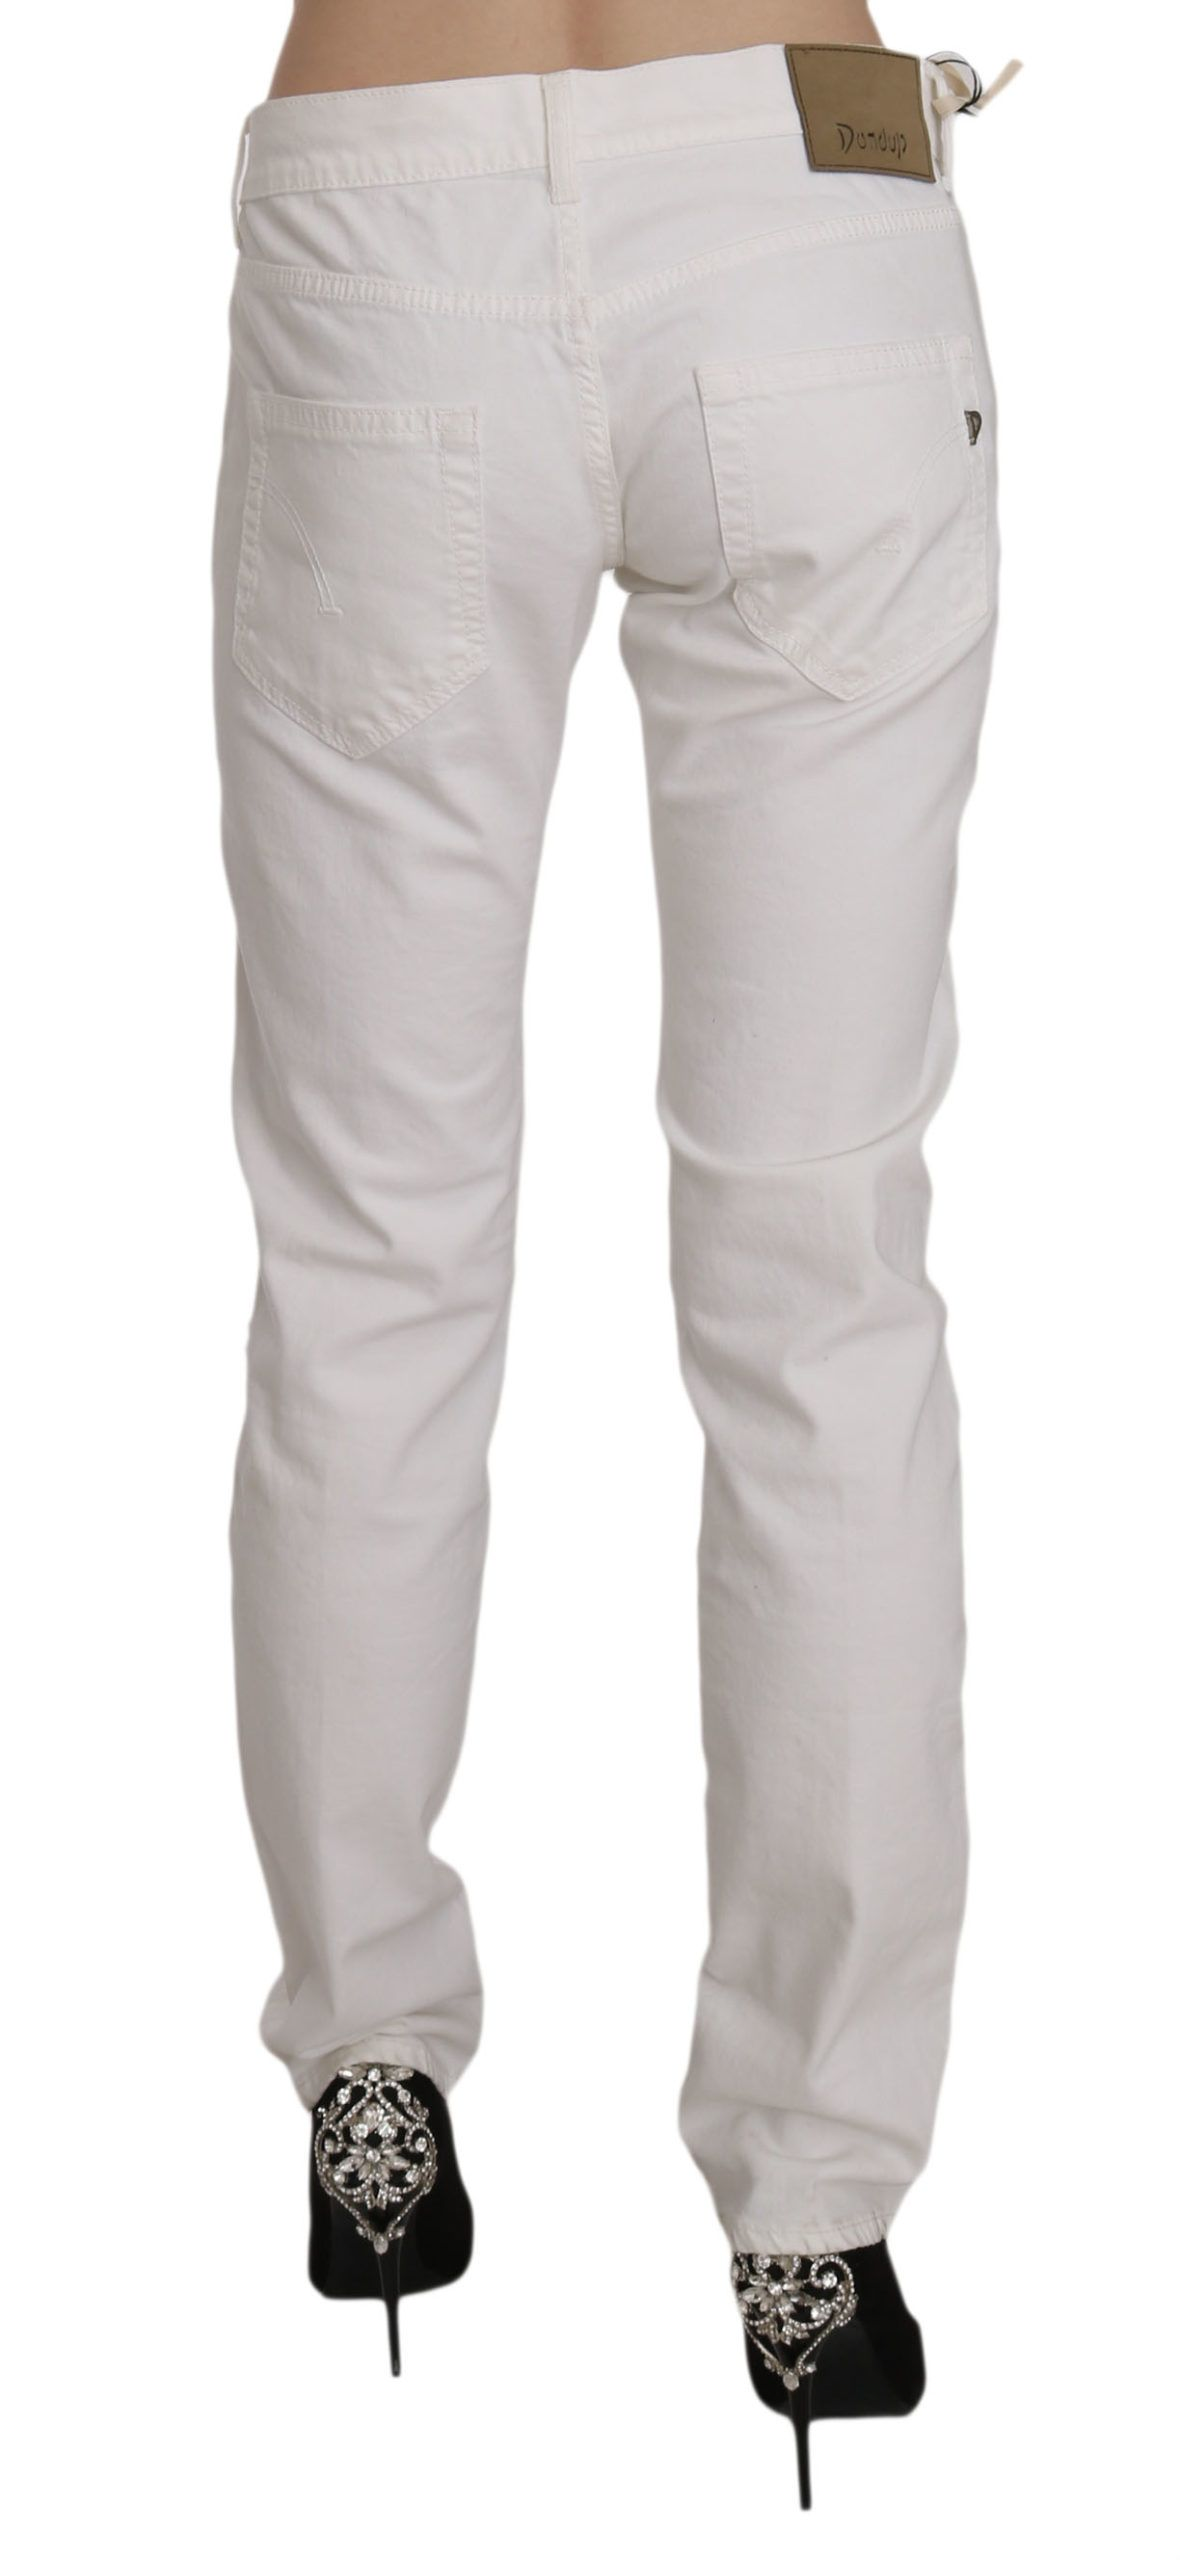 Dondup White Cotton Stretch Skinny Casual Denim Pants Jeans